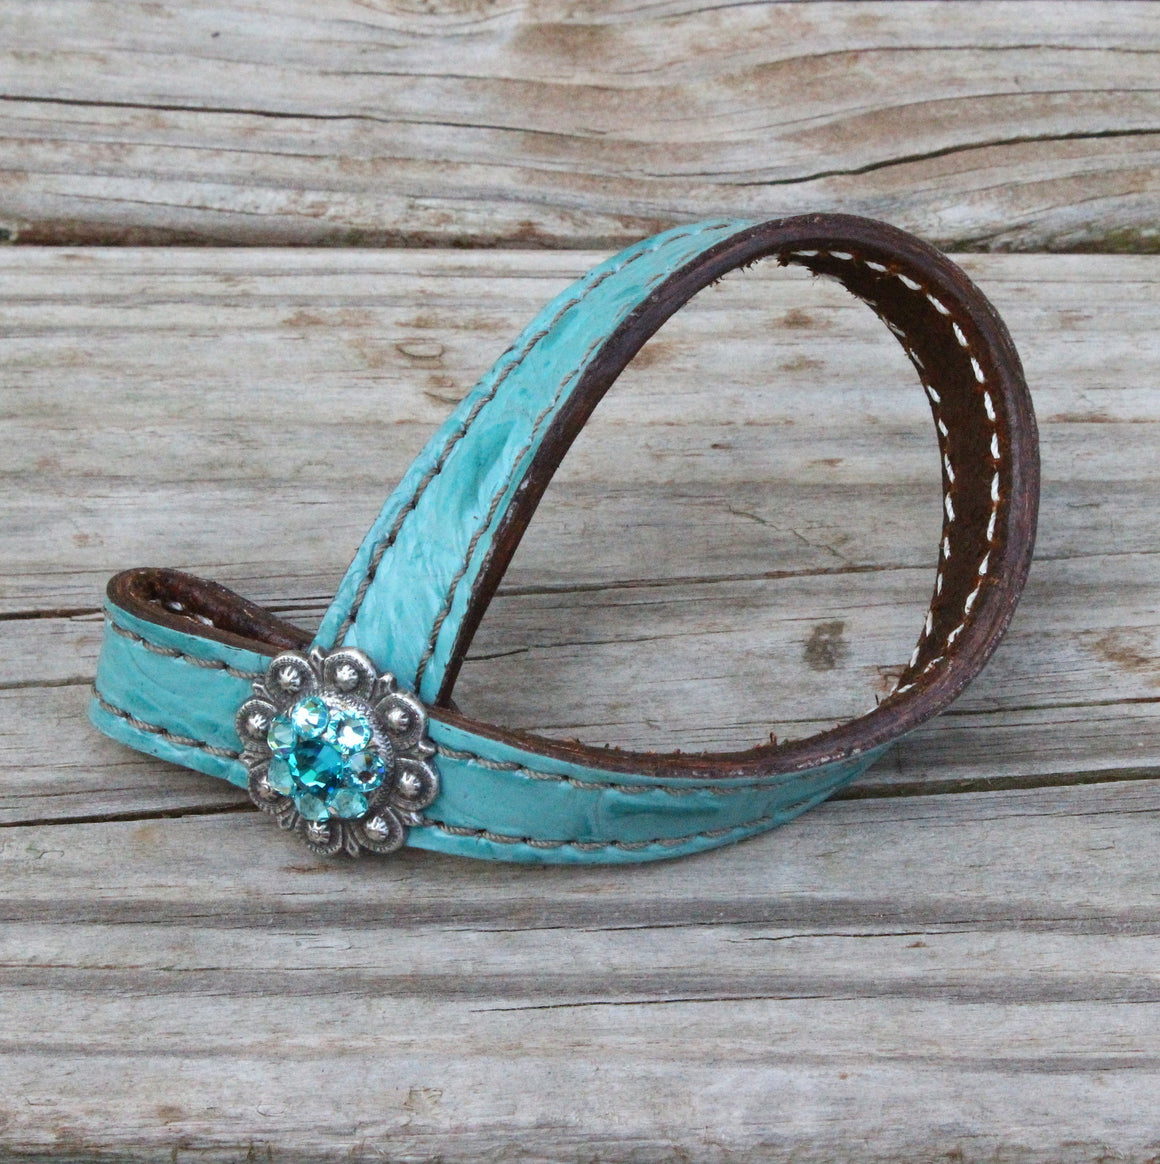 Teal Gator TieDown Keeper w/Turquoise & Teal Crystal Rhinestone Concho